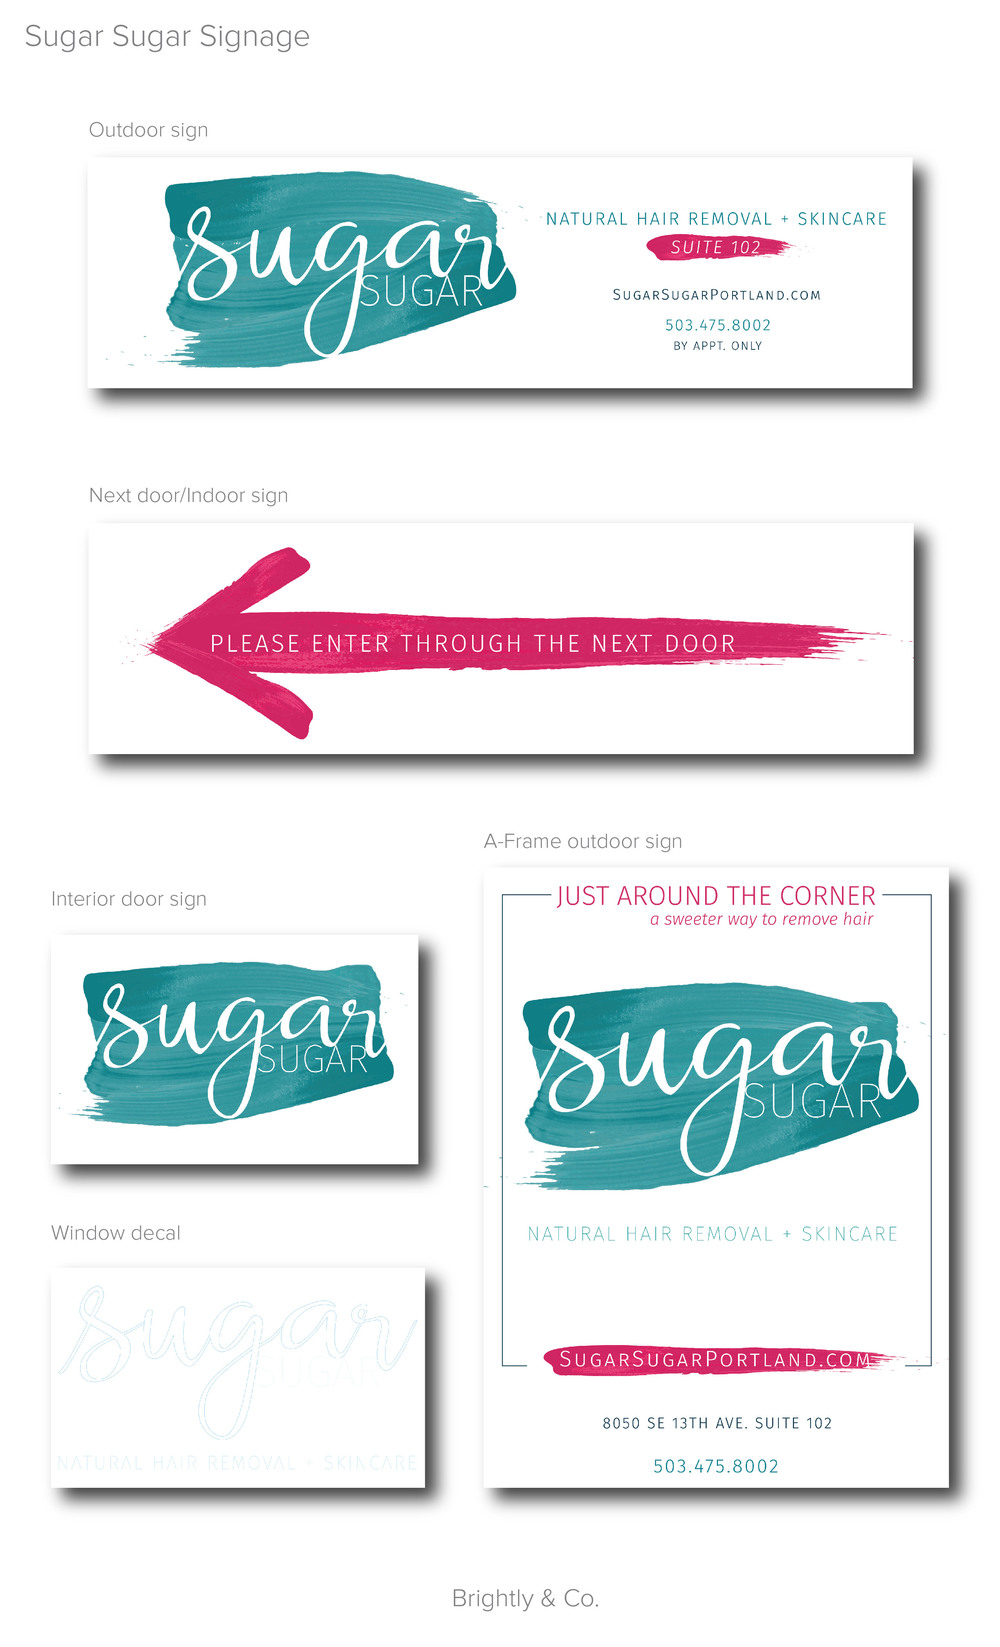 Sugar Sugar Portland Signs designed by Brightly & Co.